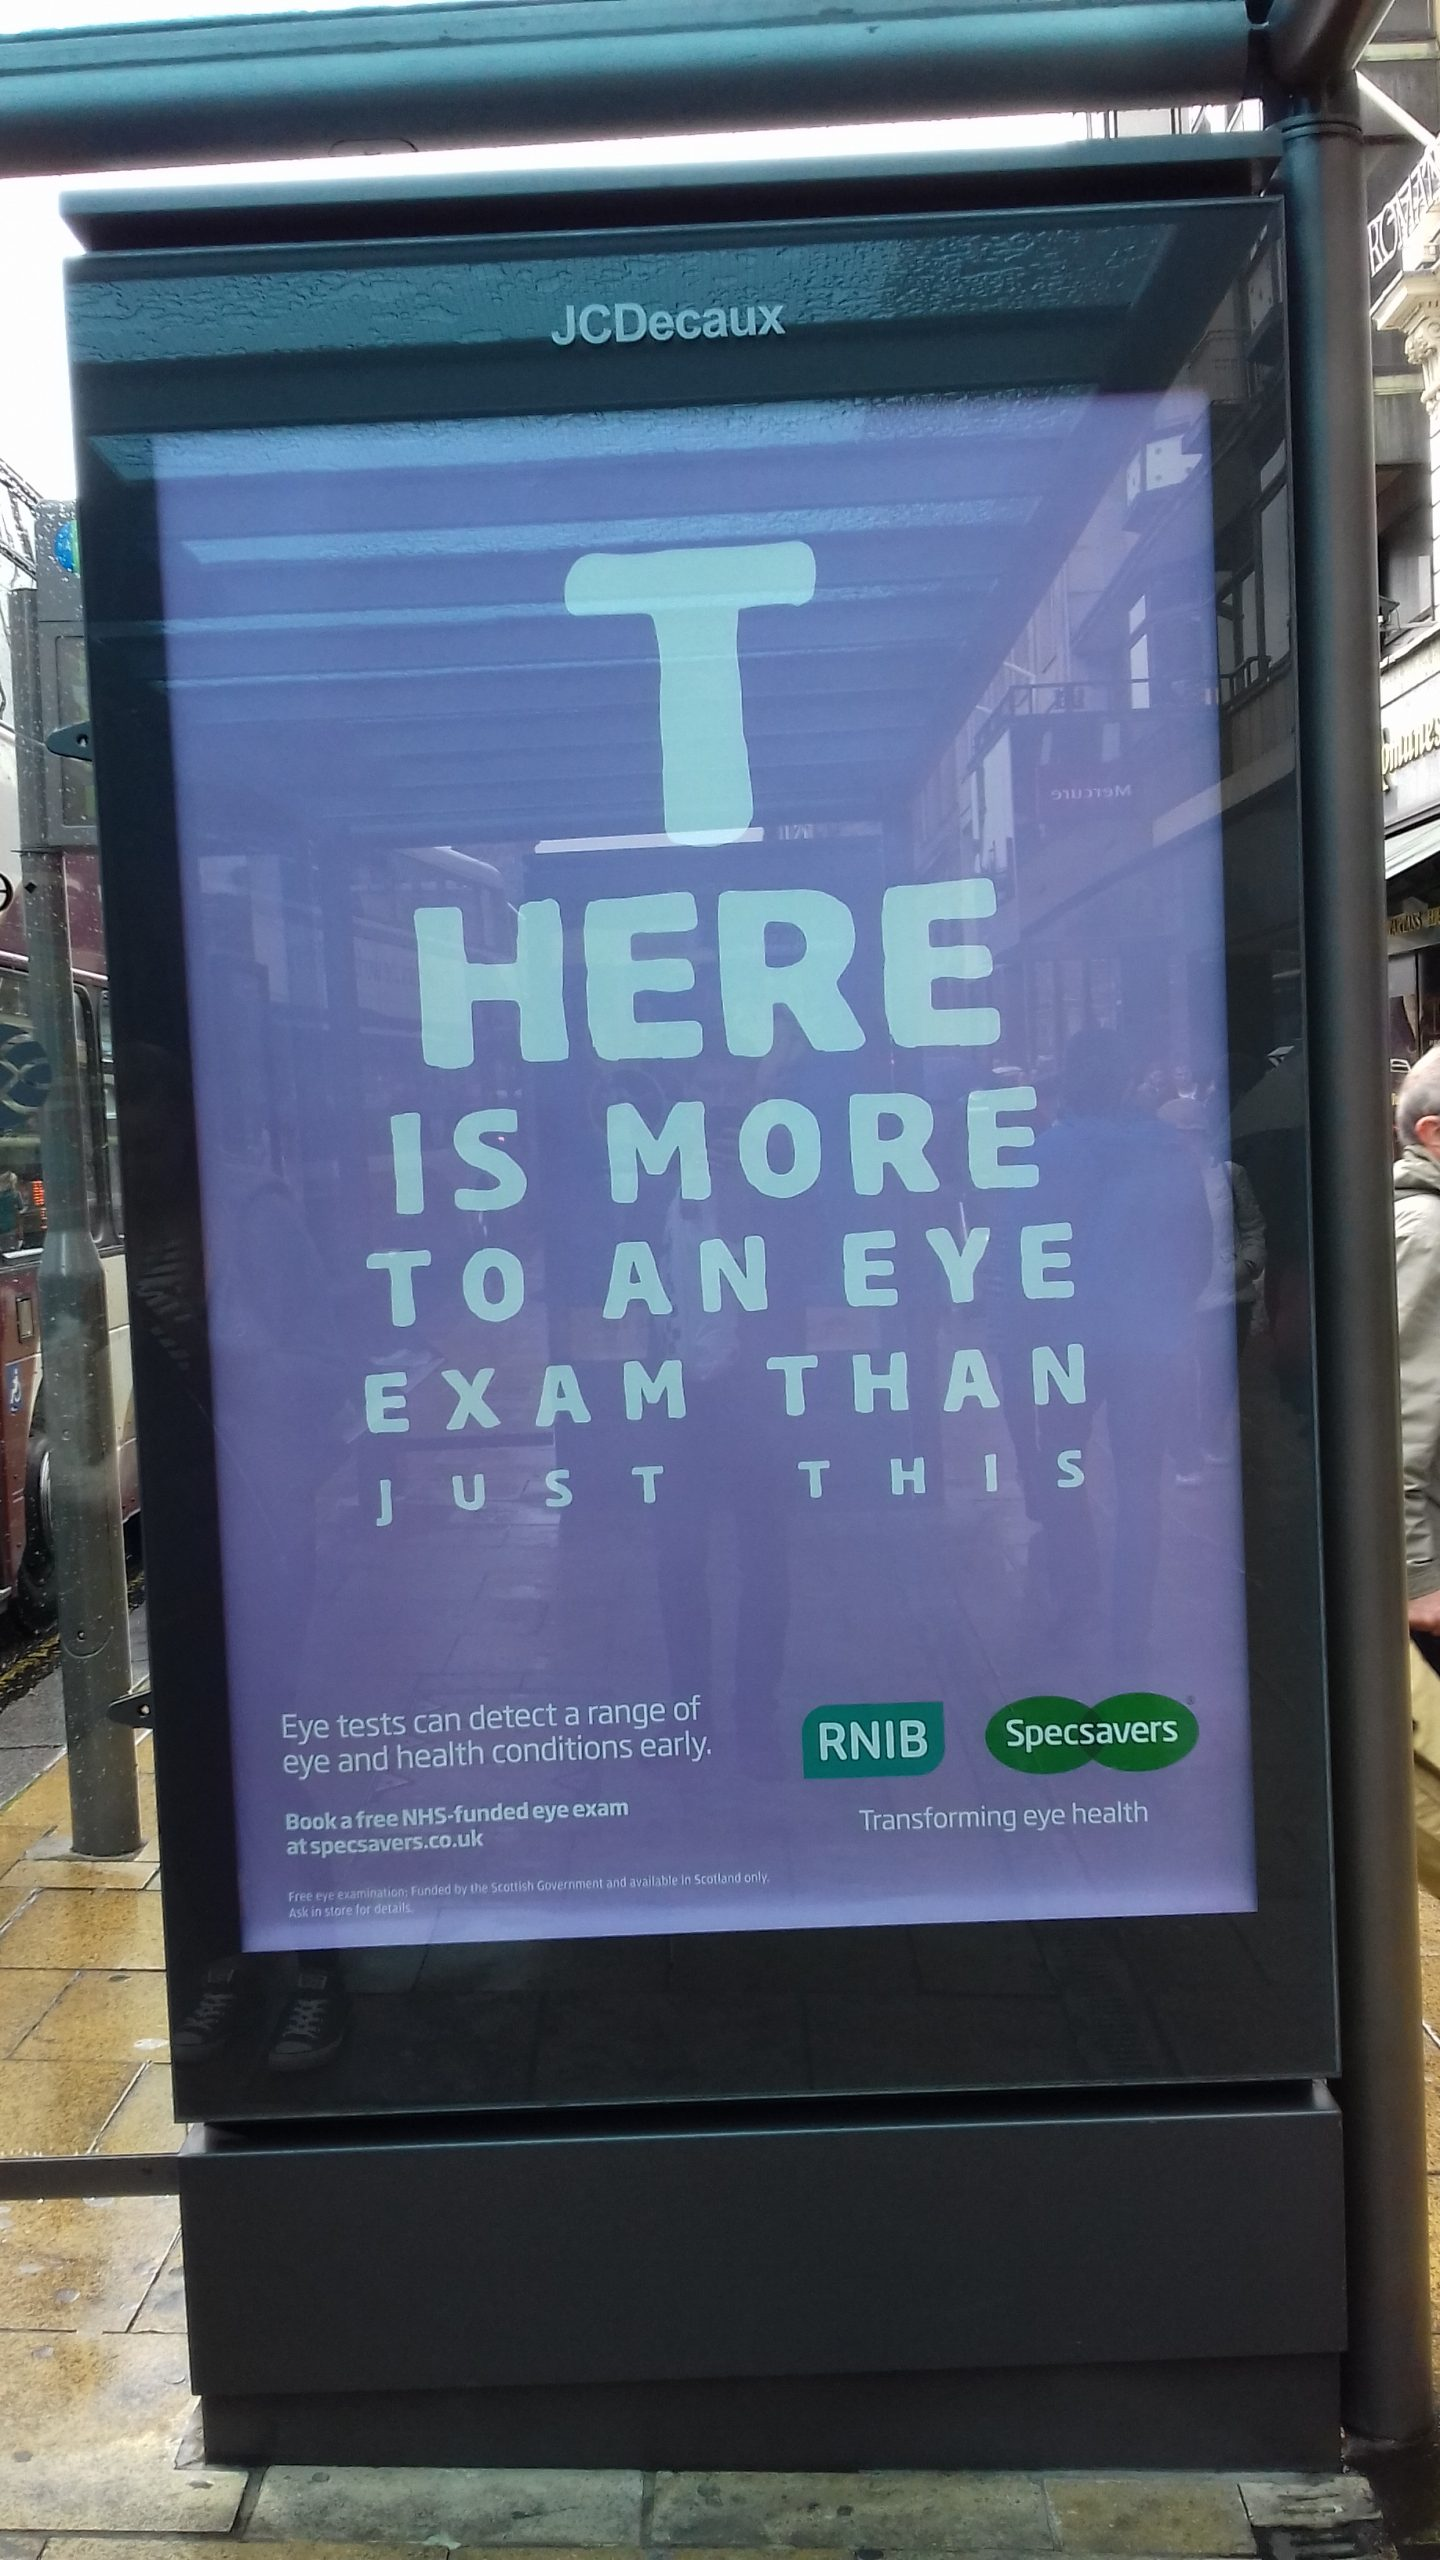 Photo of a bus stop Specsavers advert